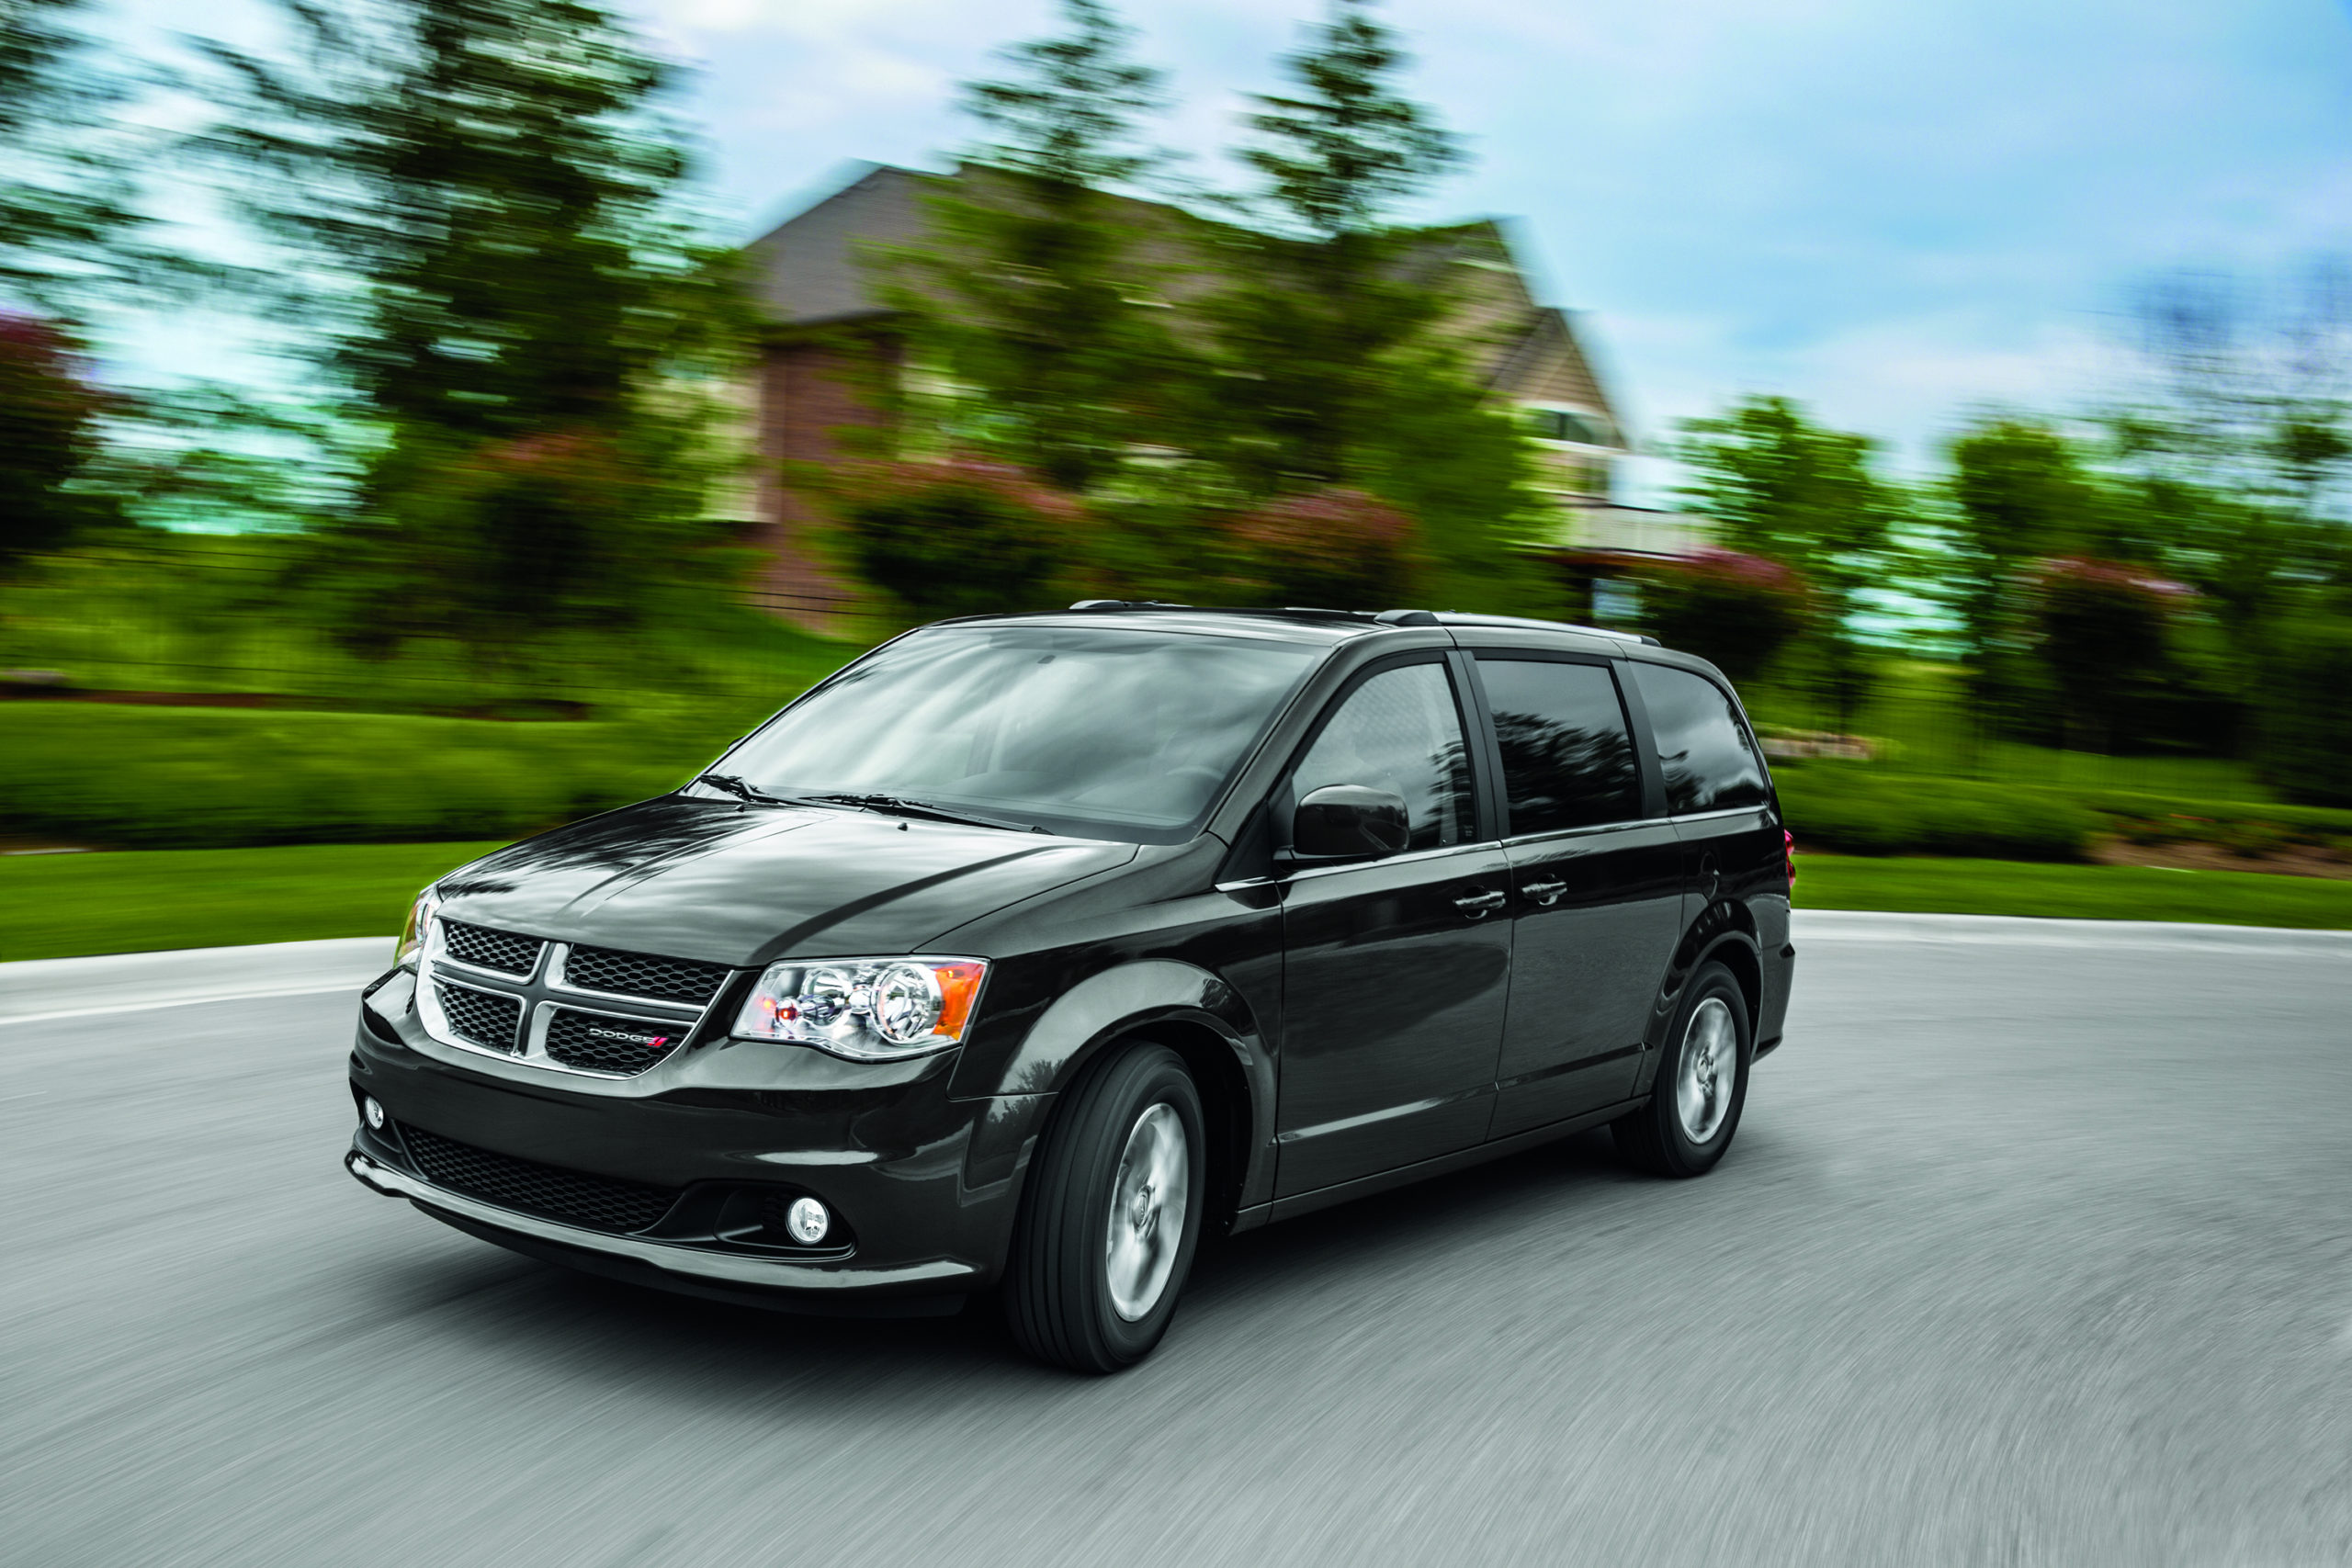 When Is The 2023 Dodge Caravan Coming Out - 2021 Dodge